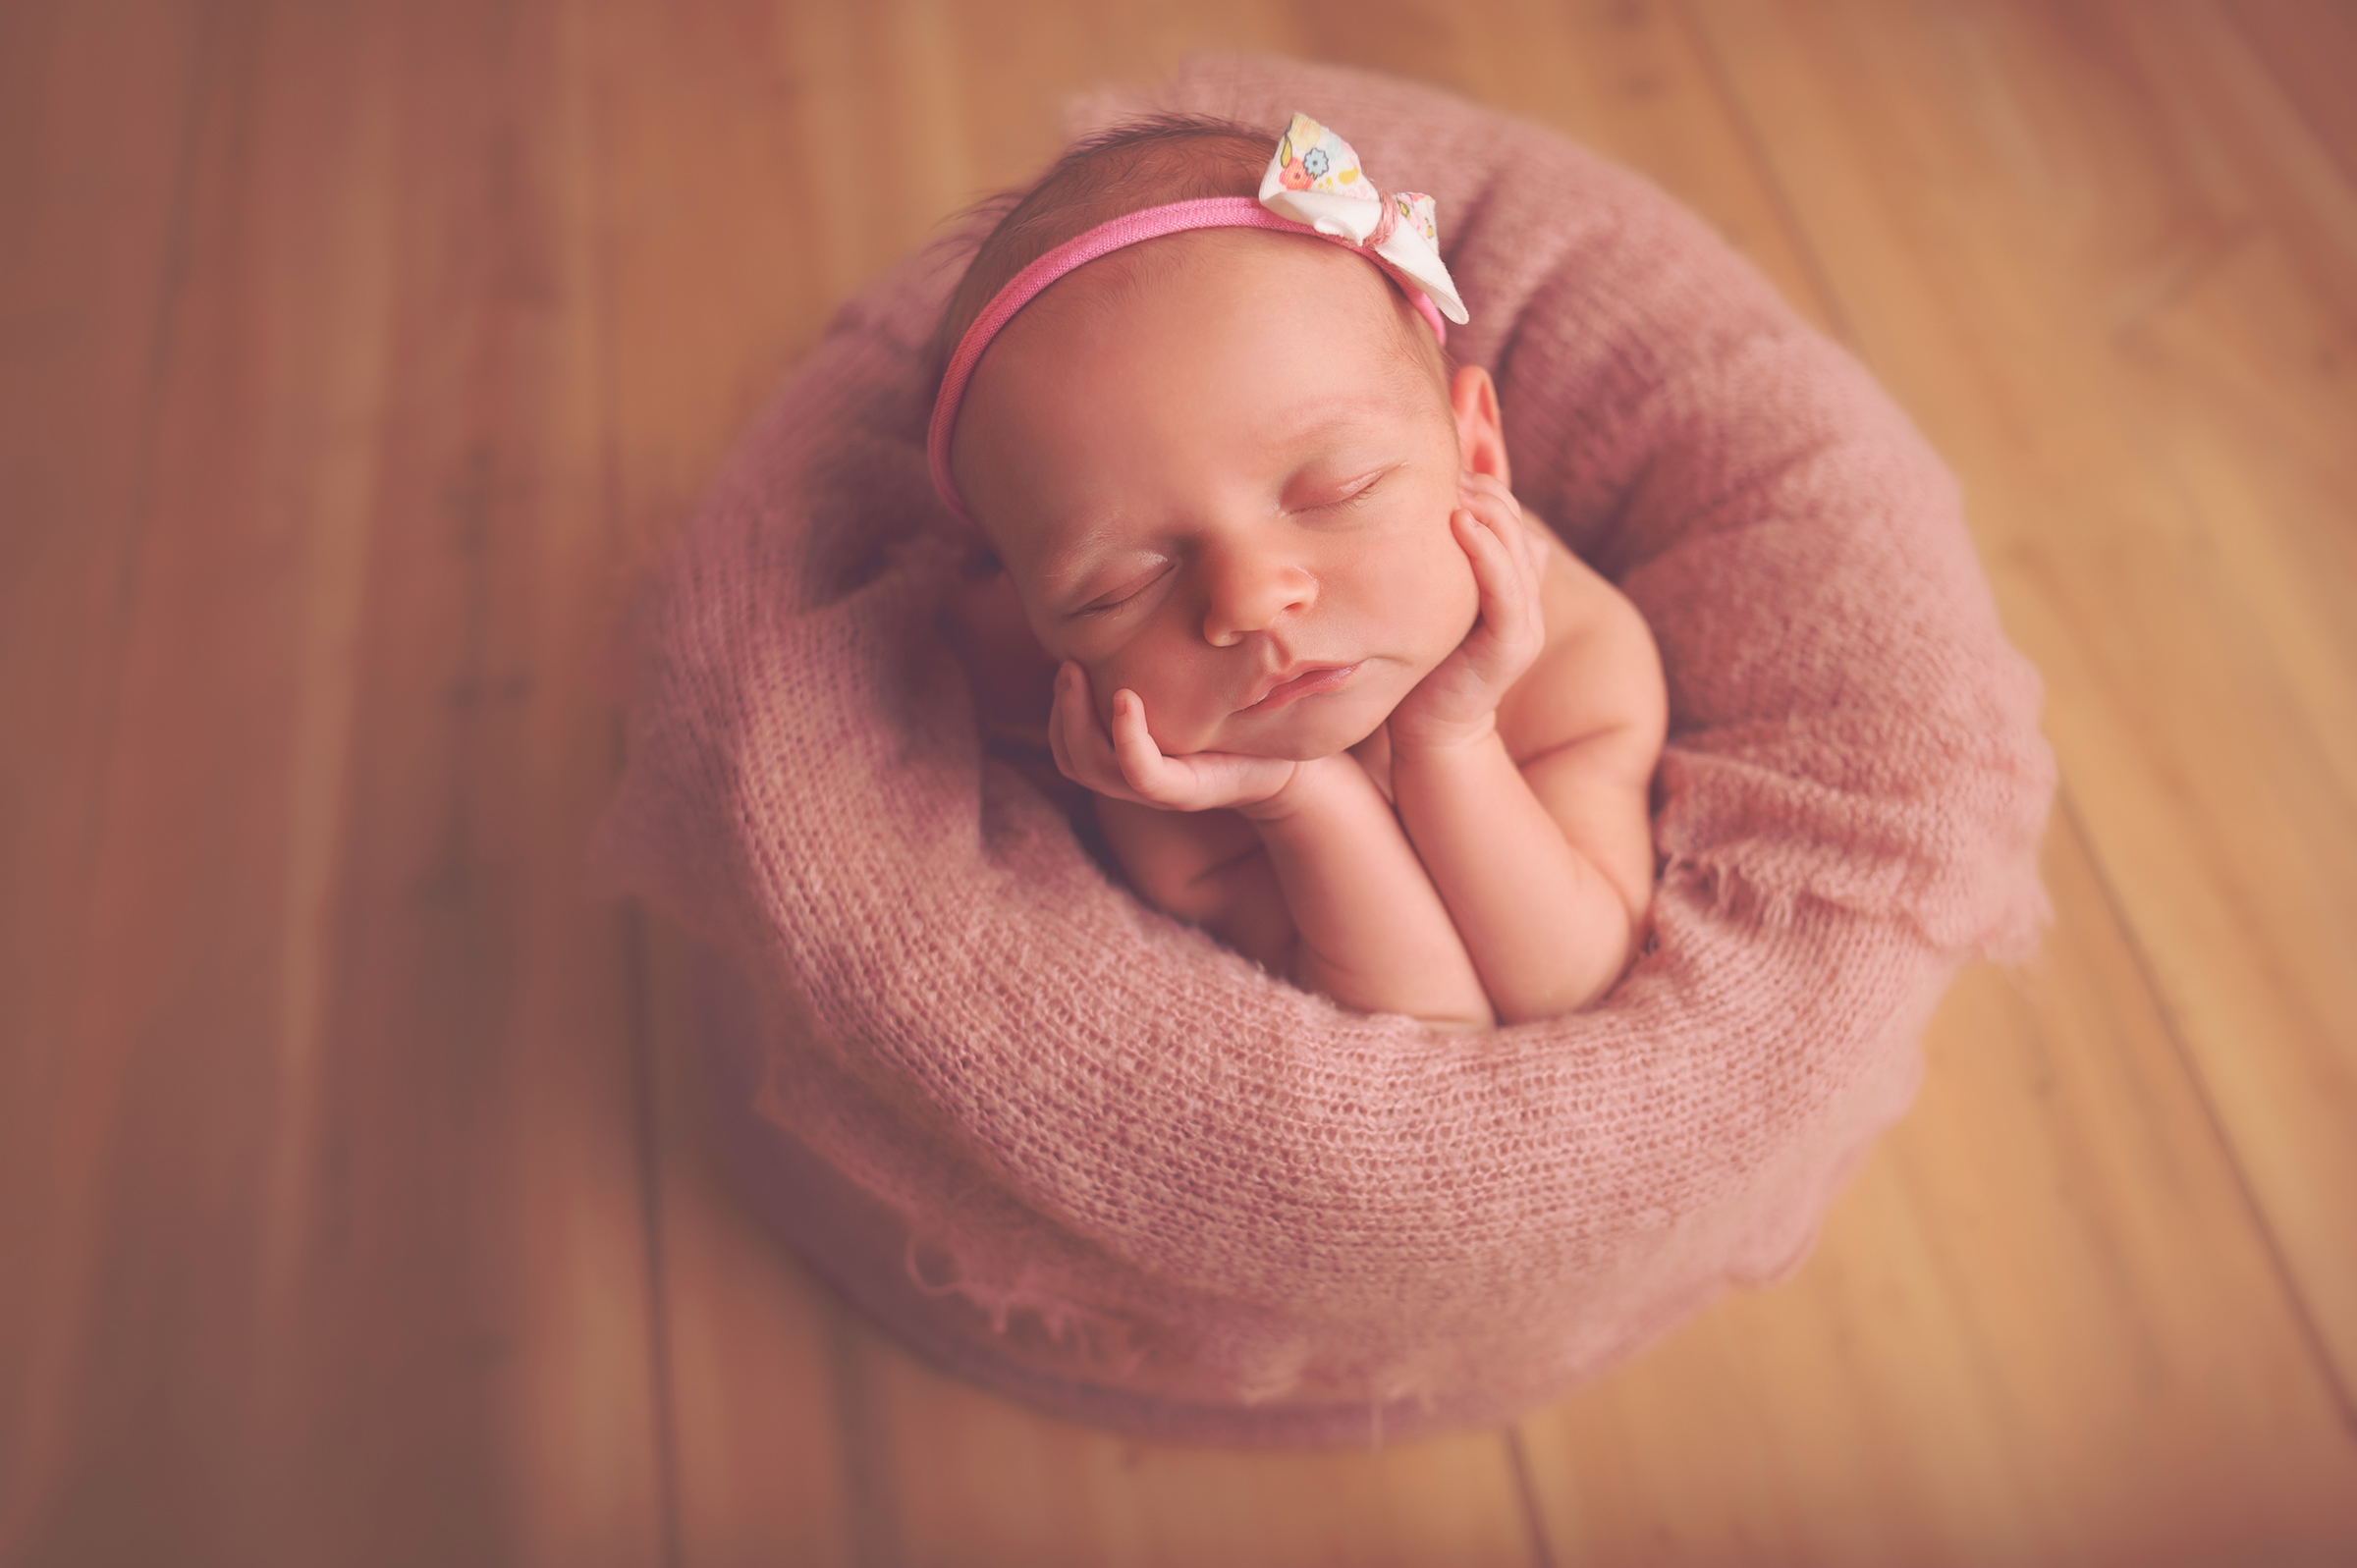 Peaceful newborn girl in pink pose during photo session in California baby studio.